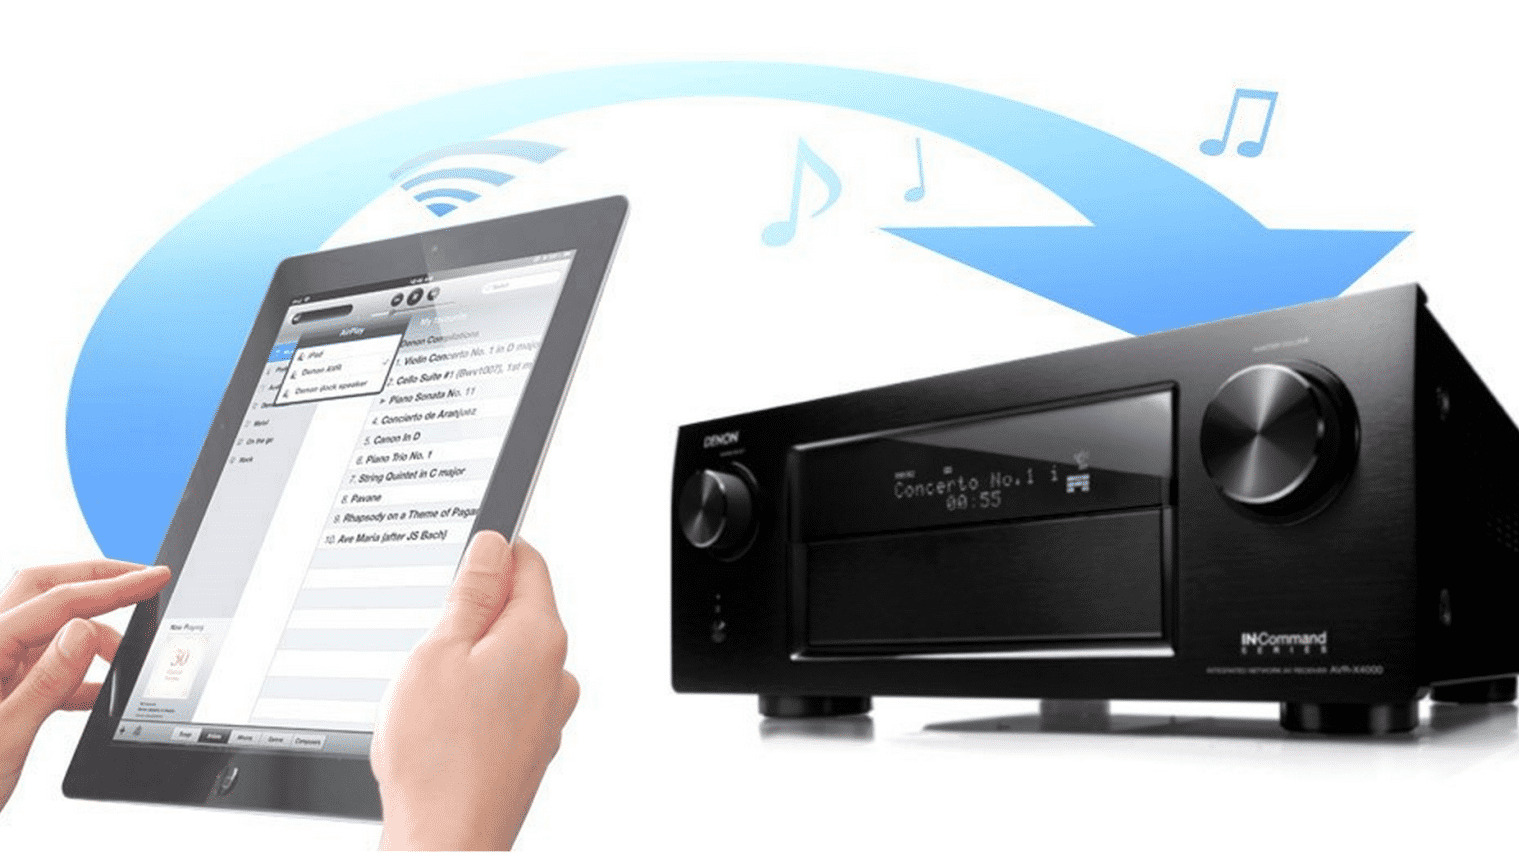 AV-Receiver verschlucken sich an Apples AirPlay